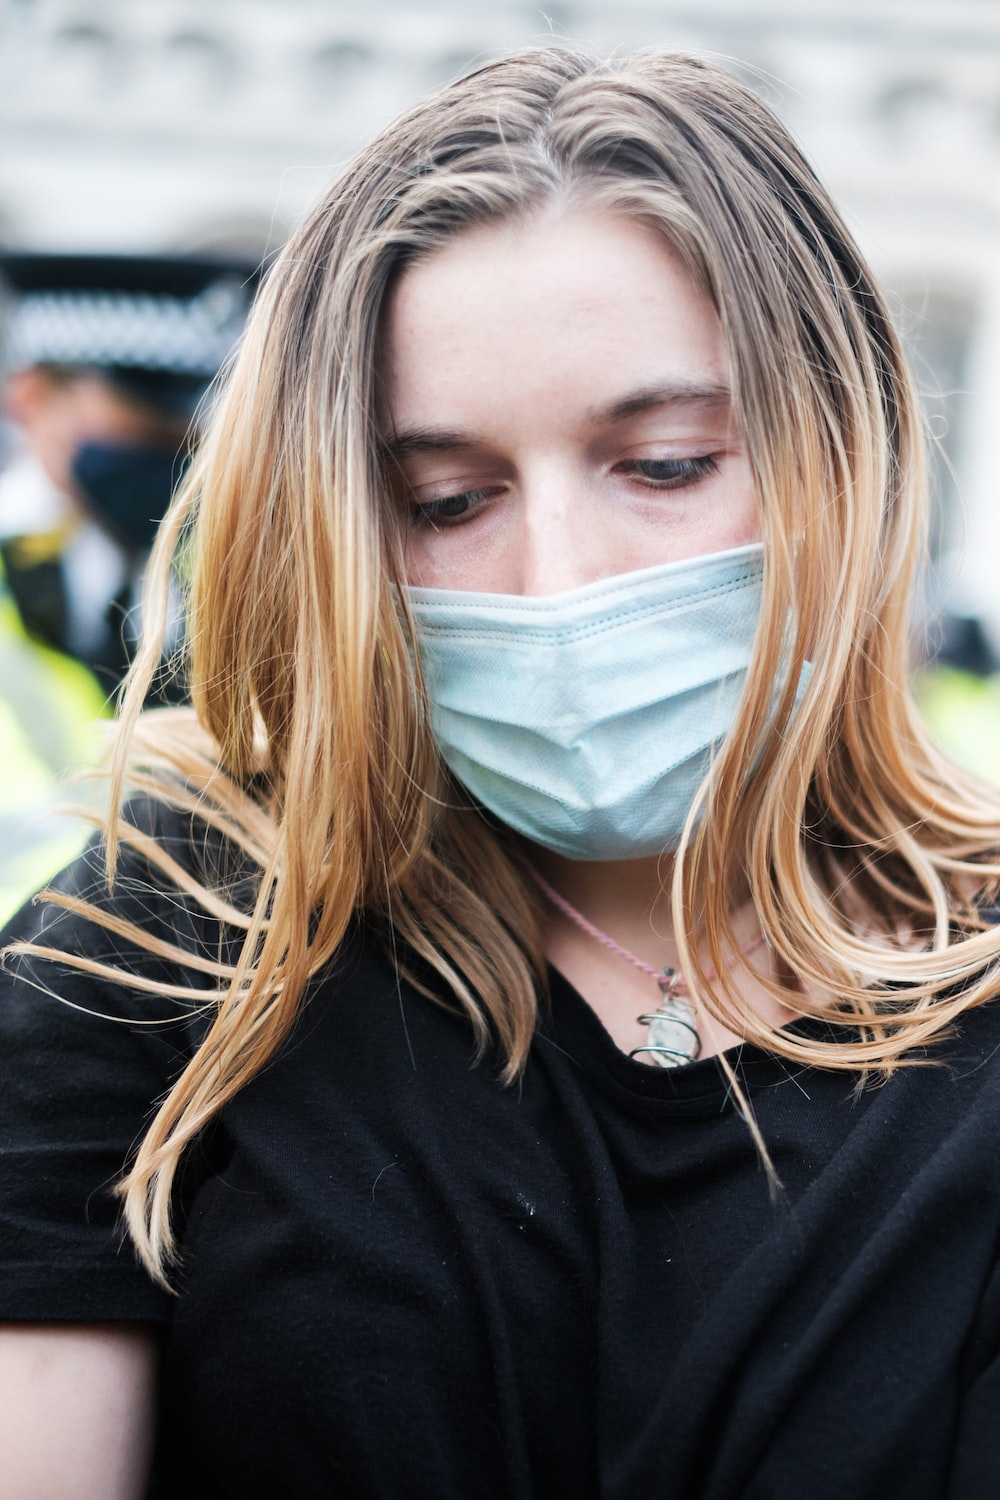 woman in black shirt with white face mask